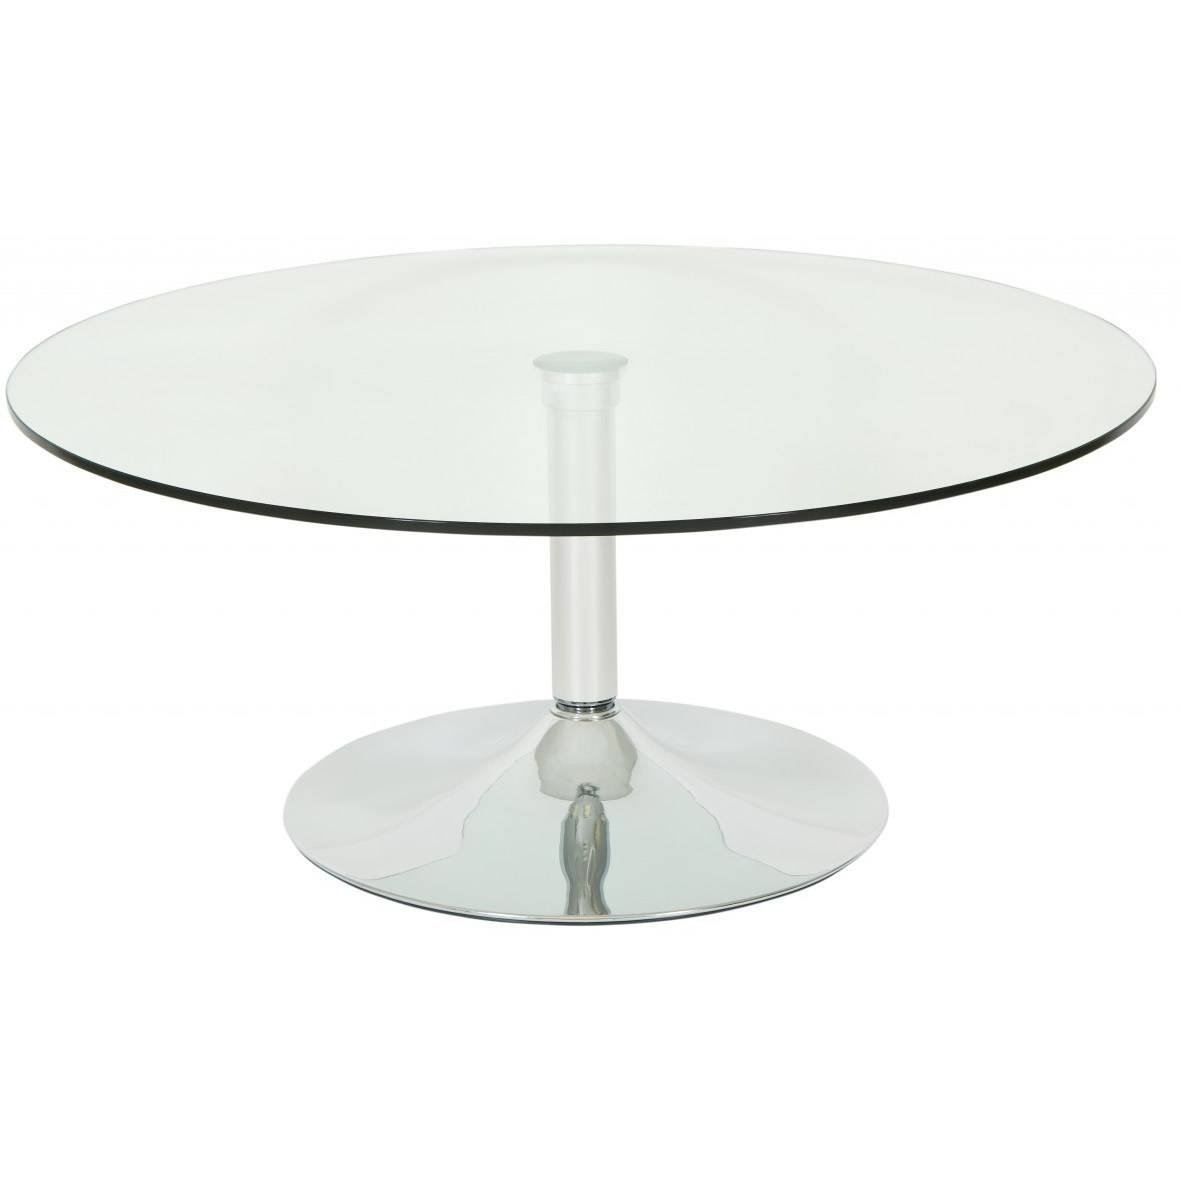 Coffee Tables Ideas: Spectacular Circle Glass Coffee Table inside Circular Glass Coffee Tables (Image 7 of 30)